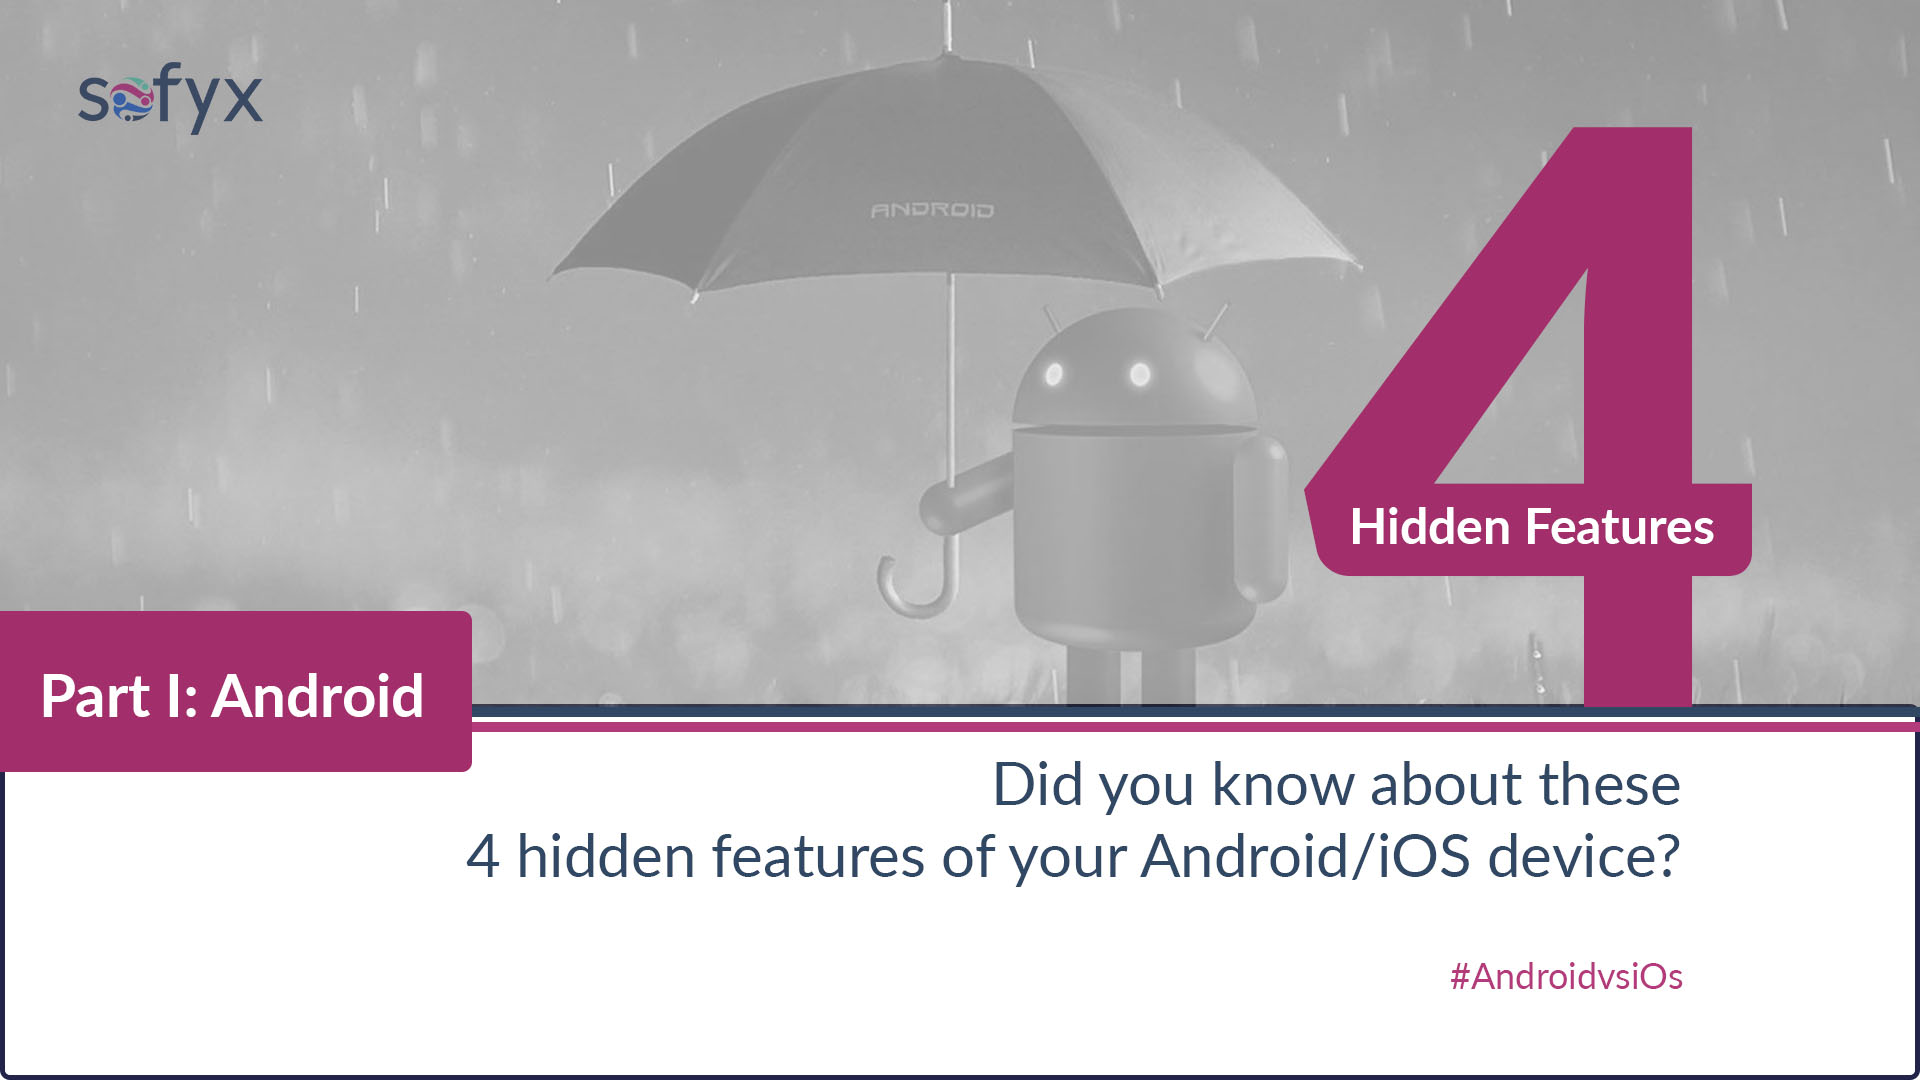 4 hidden features of your iOS/Android device